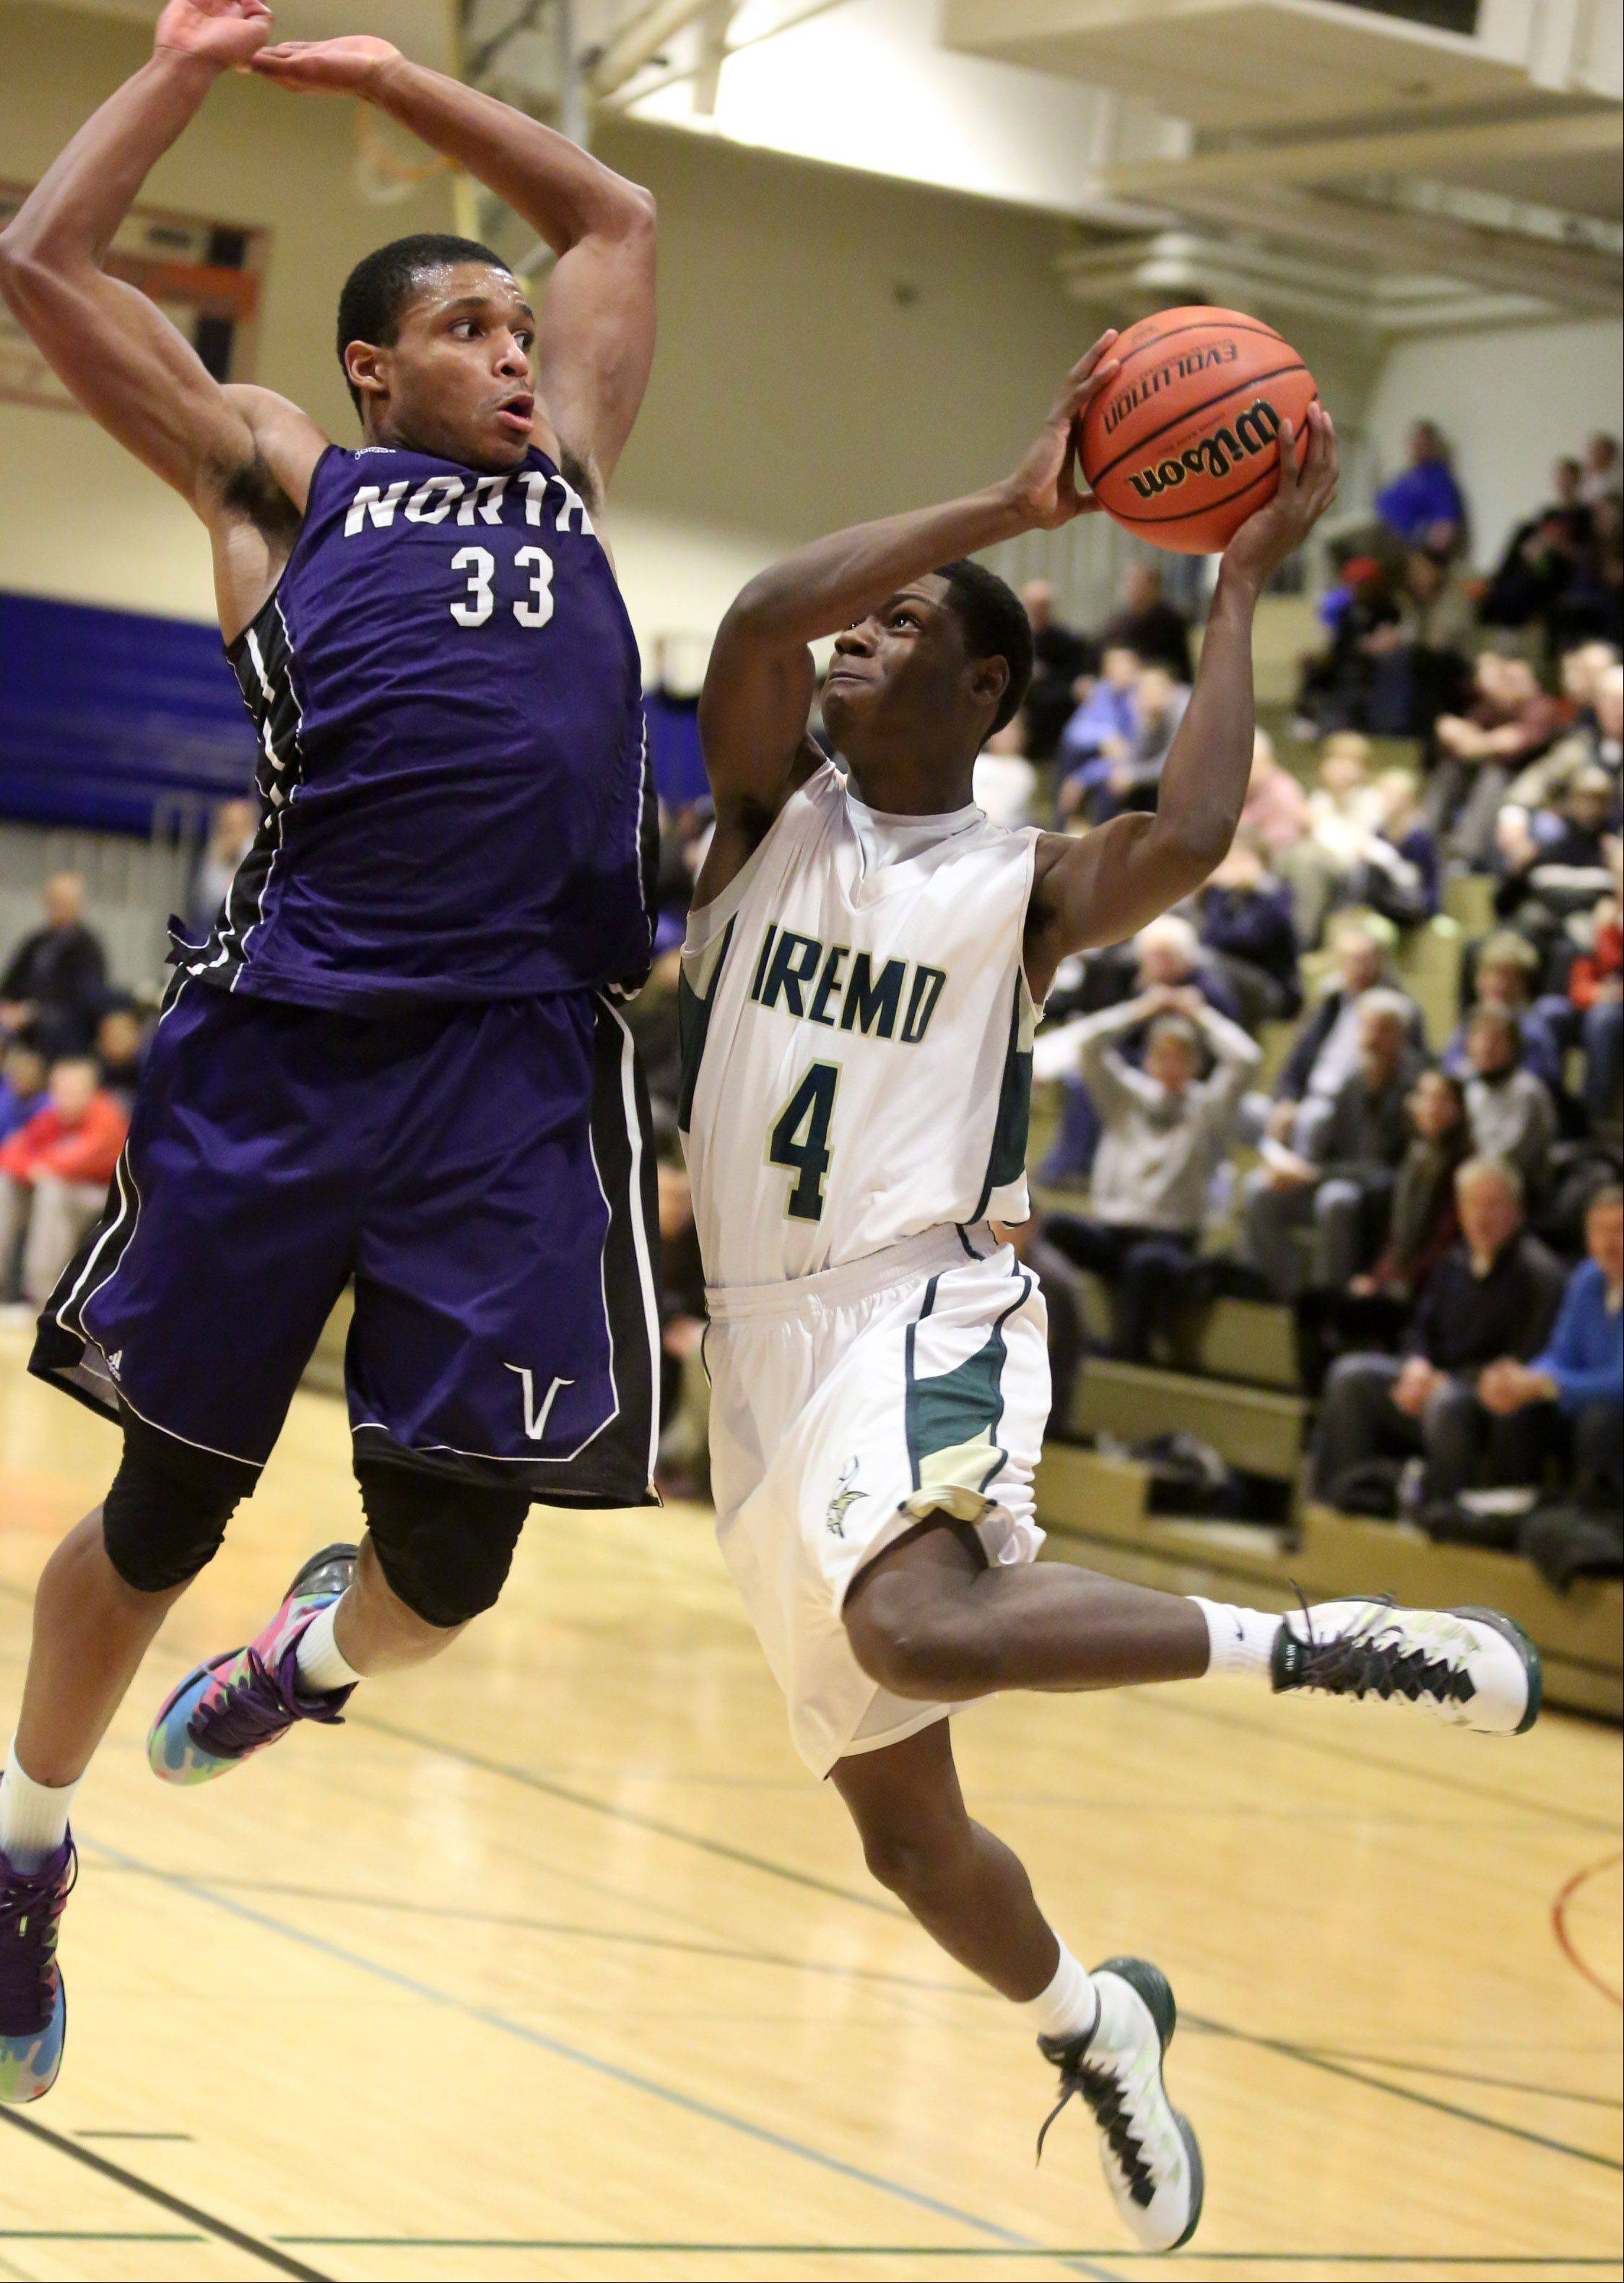 Fremd's Jalon Roundy drives to the basket against Niles North defender Duante Stephens on Thursday at the Wheeling Hardwood Classic.